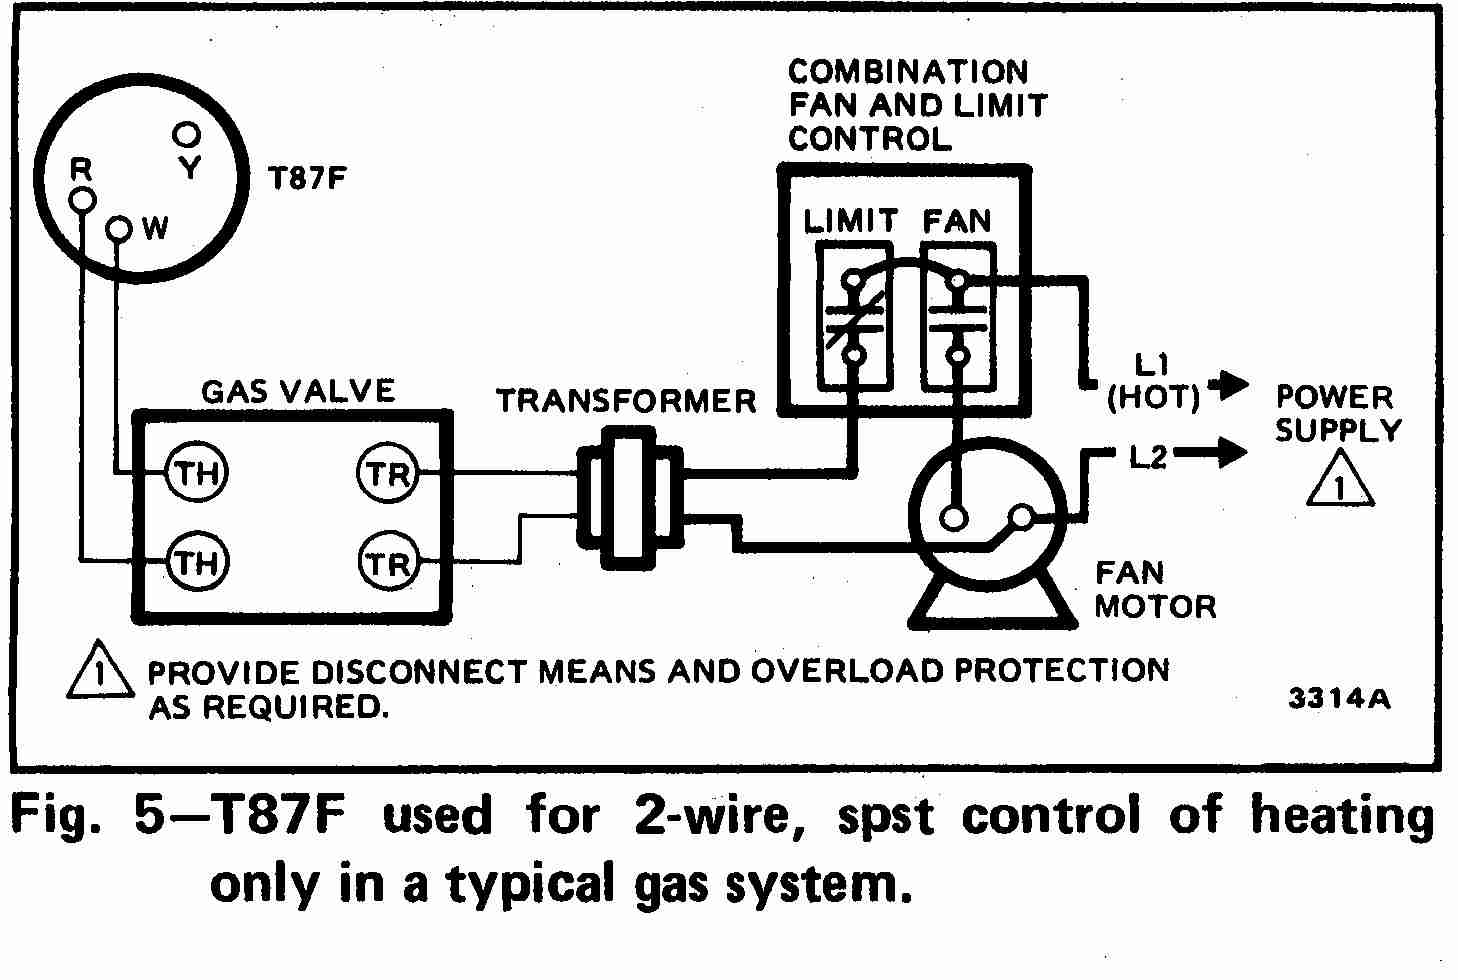 Guide To Wiring Connections For Room Thermostats Lead Type Limit Switch Diagram Honeywell T87f Thermostat 2 Wire Spst Control Of Heating Only In